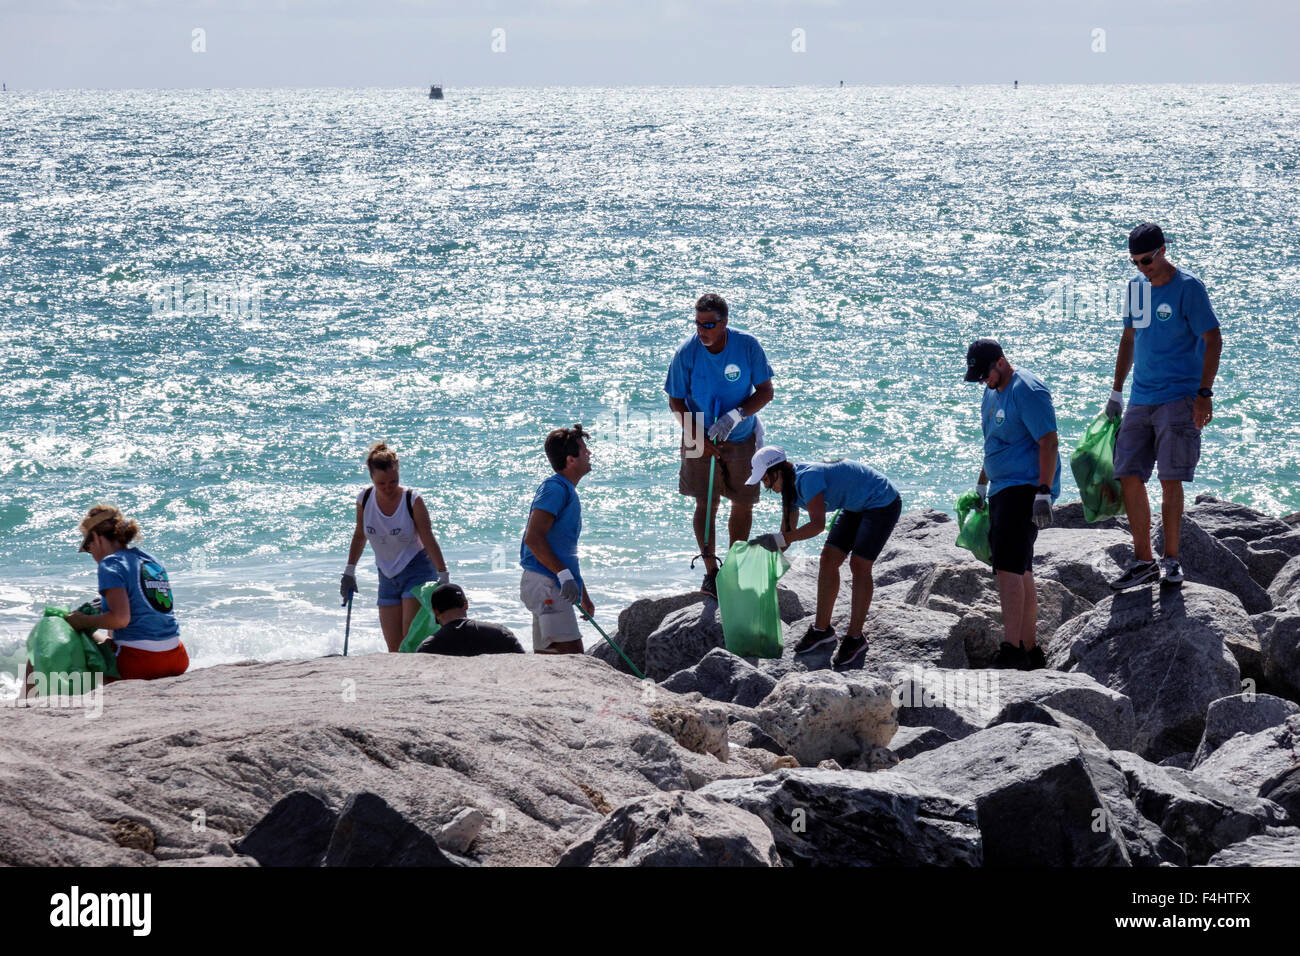 Miami Beach Florida clean-up cleanup clean up volunteer man woman Hispanic collecting trash litter community service - Stock Image